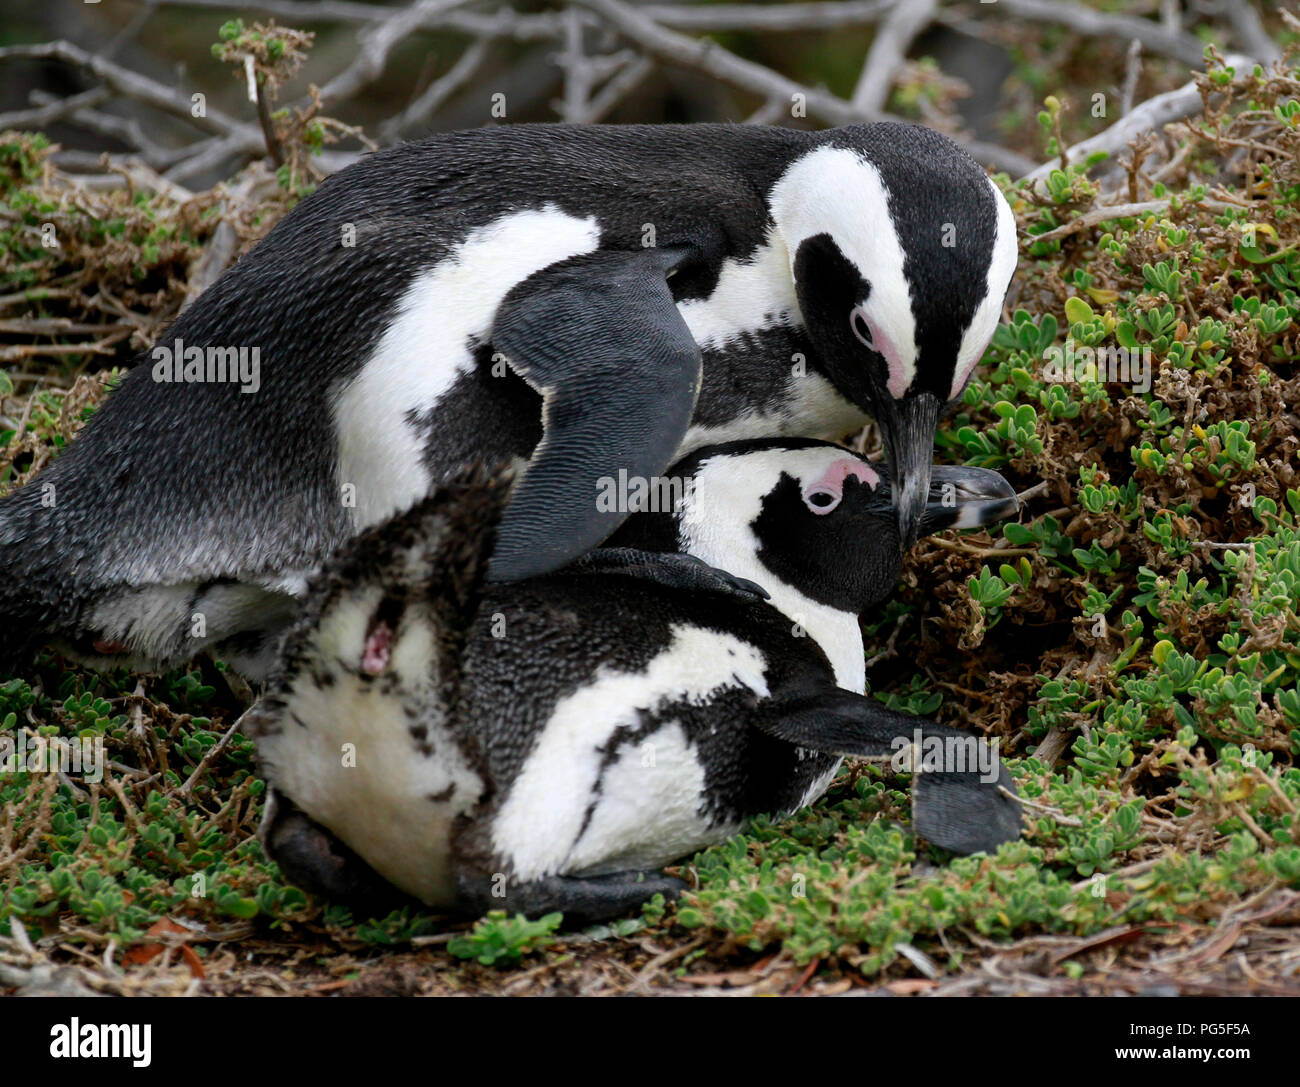 Les pingouins africains (Spheniscus demersus) à Stony Point Nature Reserve, Betty's Bay, Afrique du Sud. Photo Stock